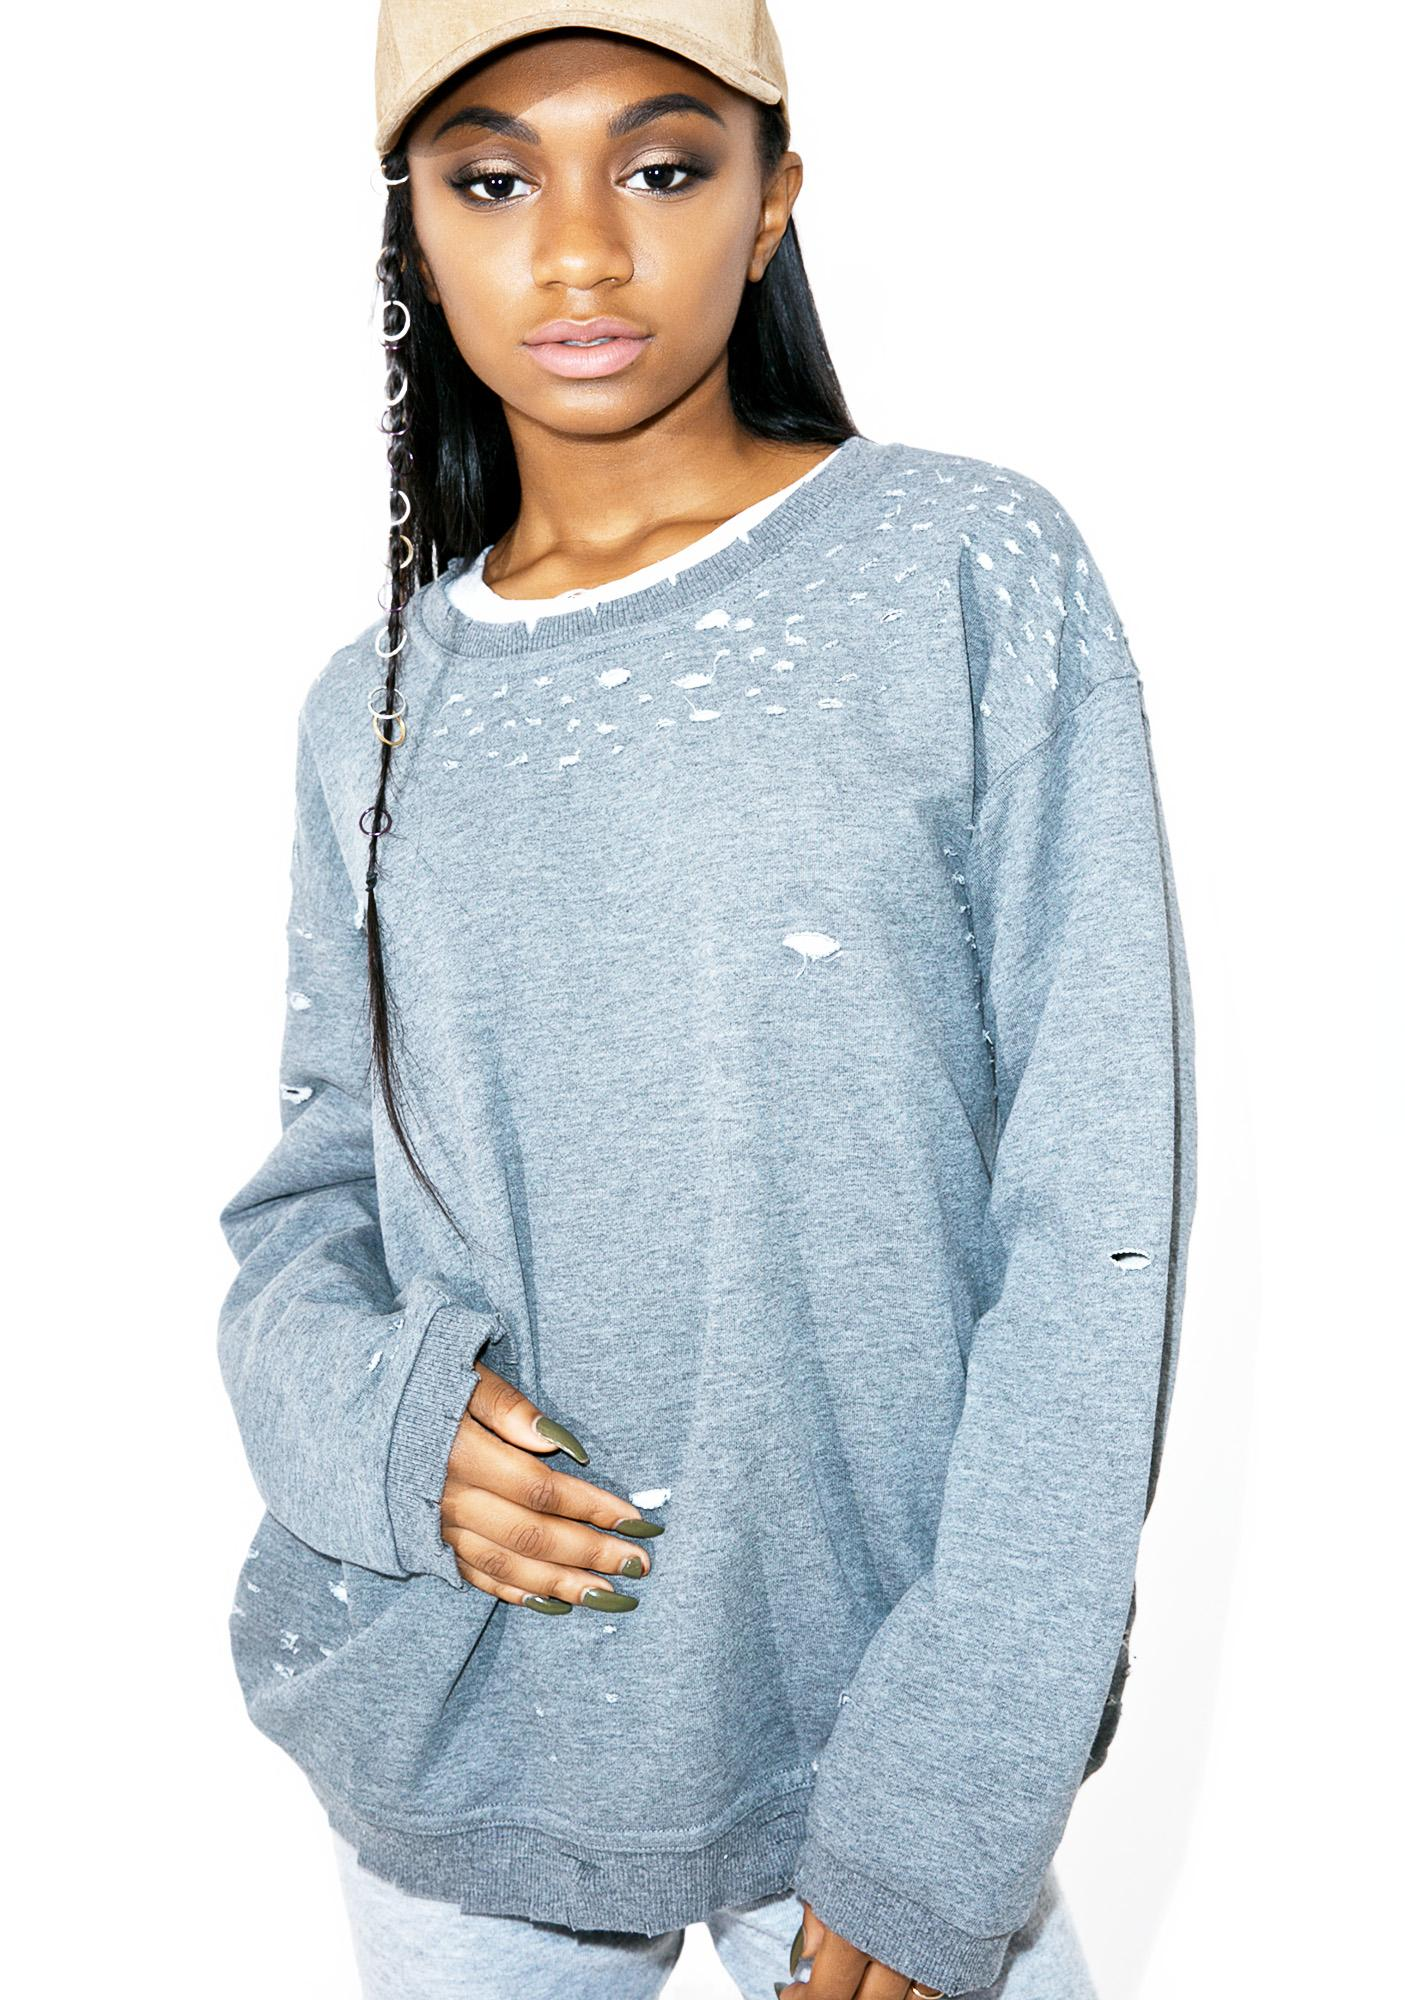 Troublemaker Distressed Sweatshirt